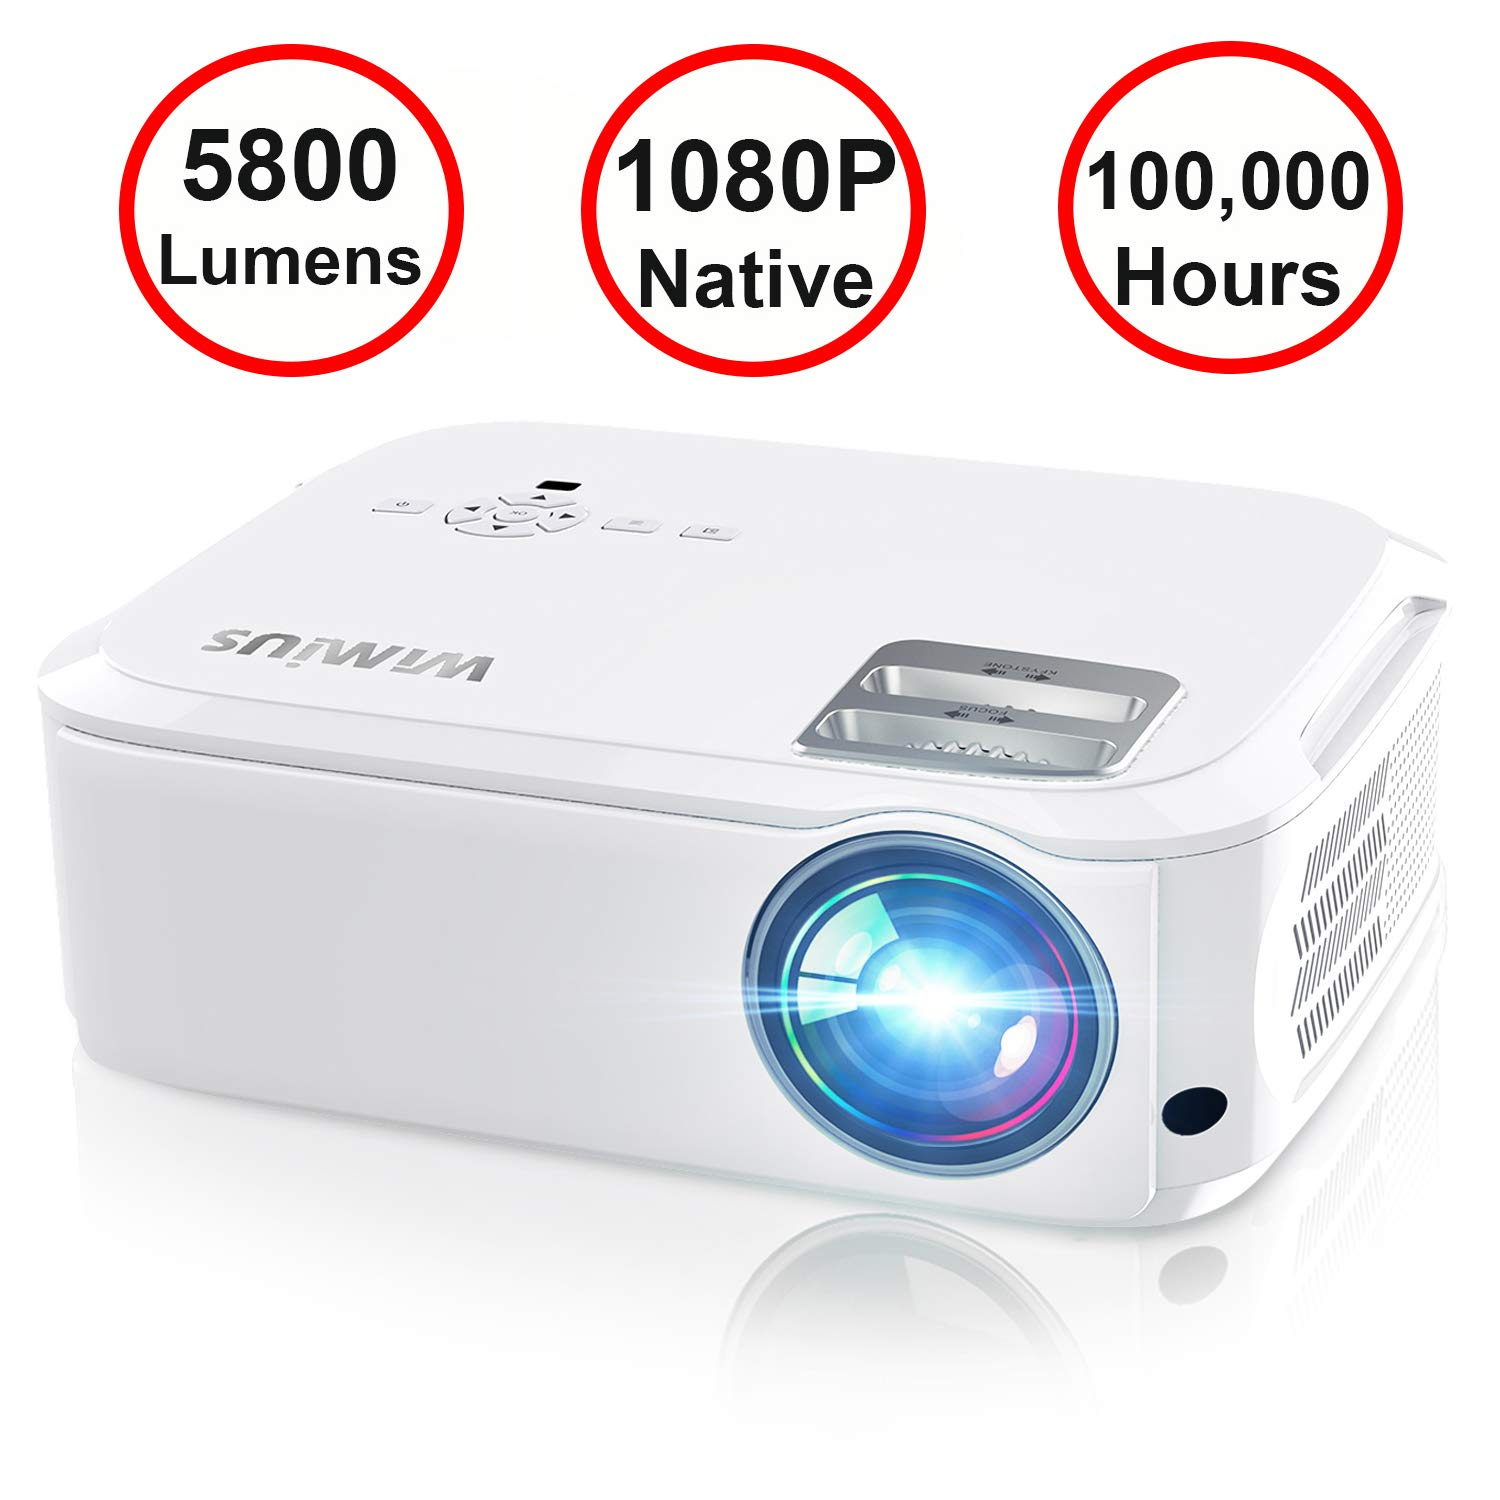 Projector, WiMiUS P21 5800 Lumens Video Projector Native 1080P LED Projector Support 4K Zoom 300'' Display 100,000H Lamp Compatible with Fire TV Stick Laptop Phone Xbox PS4 Power Point Presentation by WiMiUS